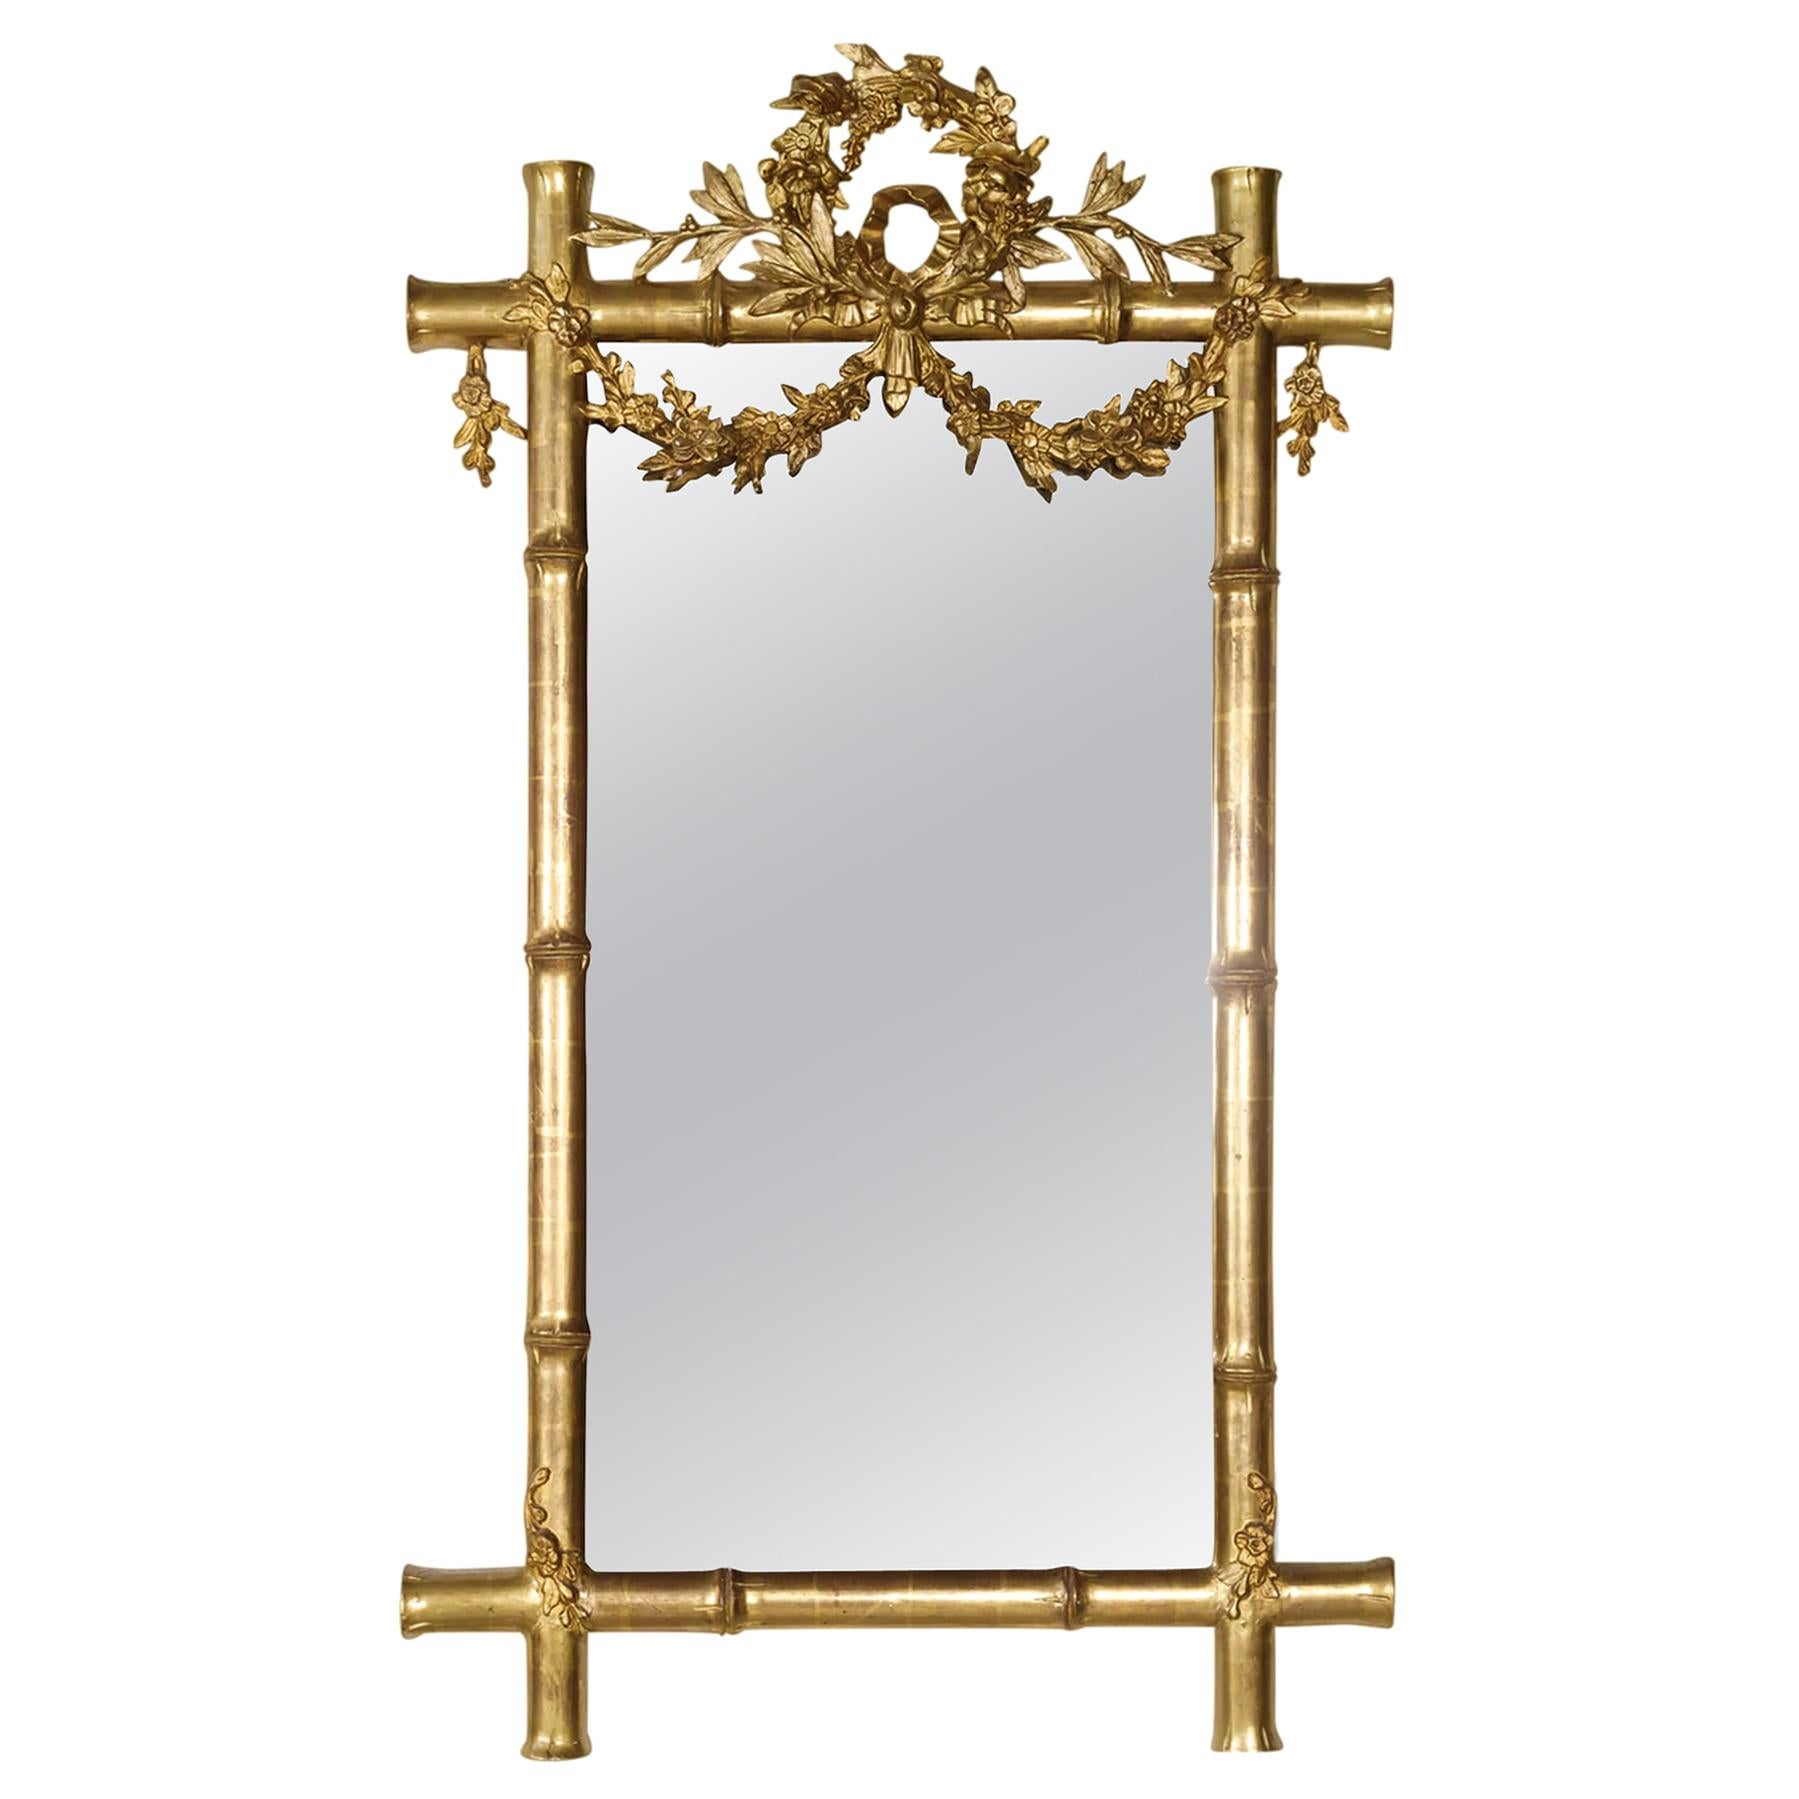 Mid-19th Century French Napoleon III Period Faux Bamboo Giltwood Mirror